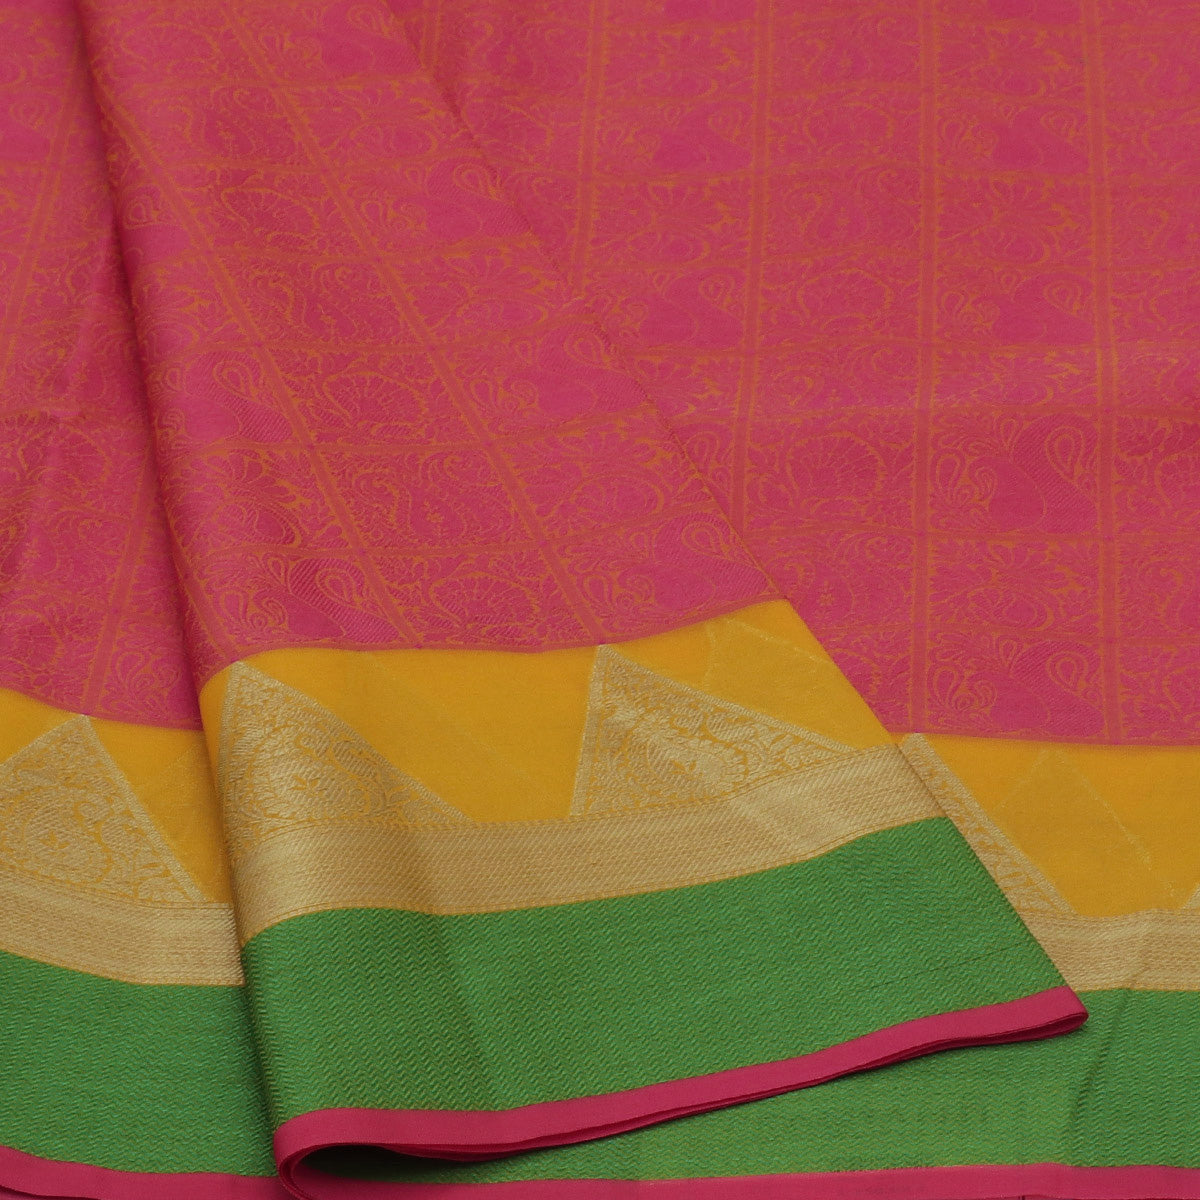 Banarasi Kora Muslin Saree Pink and Light Green with Temple Zari border